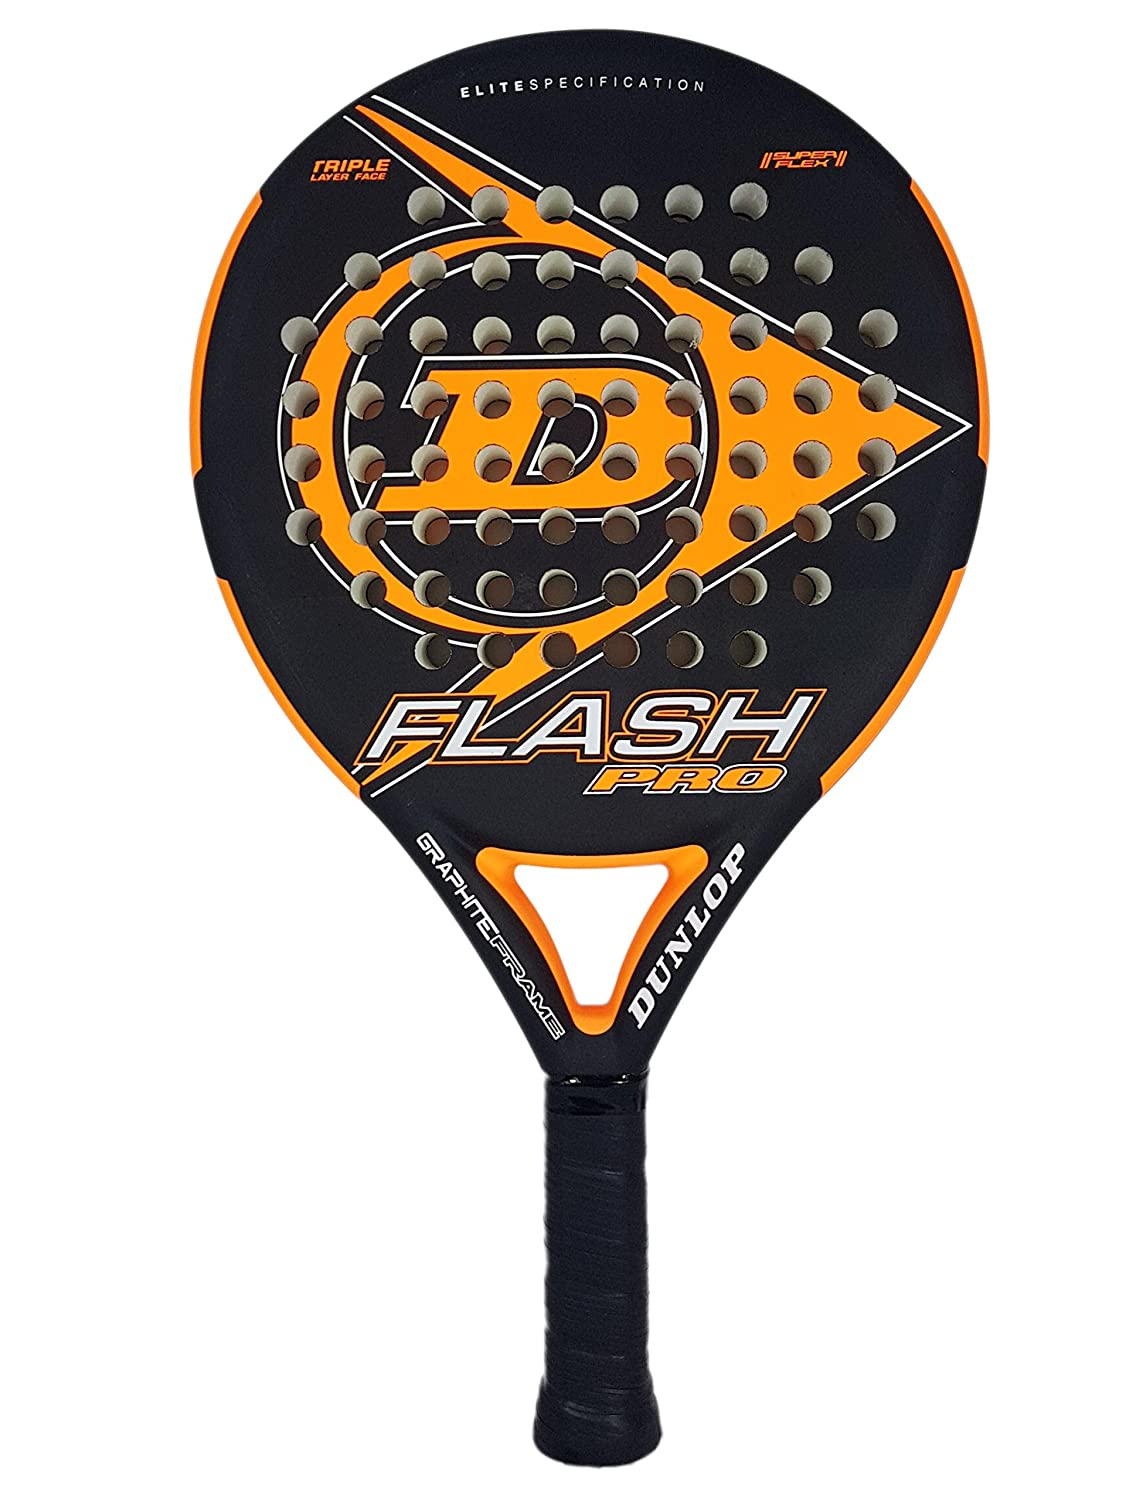 Dunlop FLASH PRO - Pala de pádel 38mm, 2018, nivel iniciación, color verde: Amazon.es: Deportes y aire libre